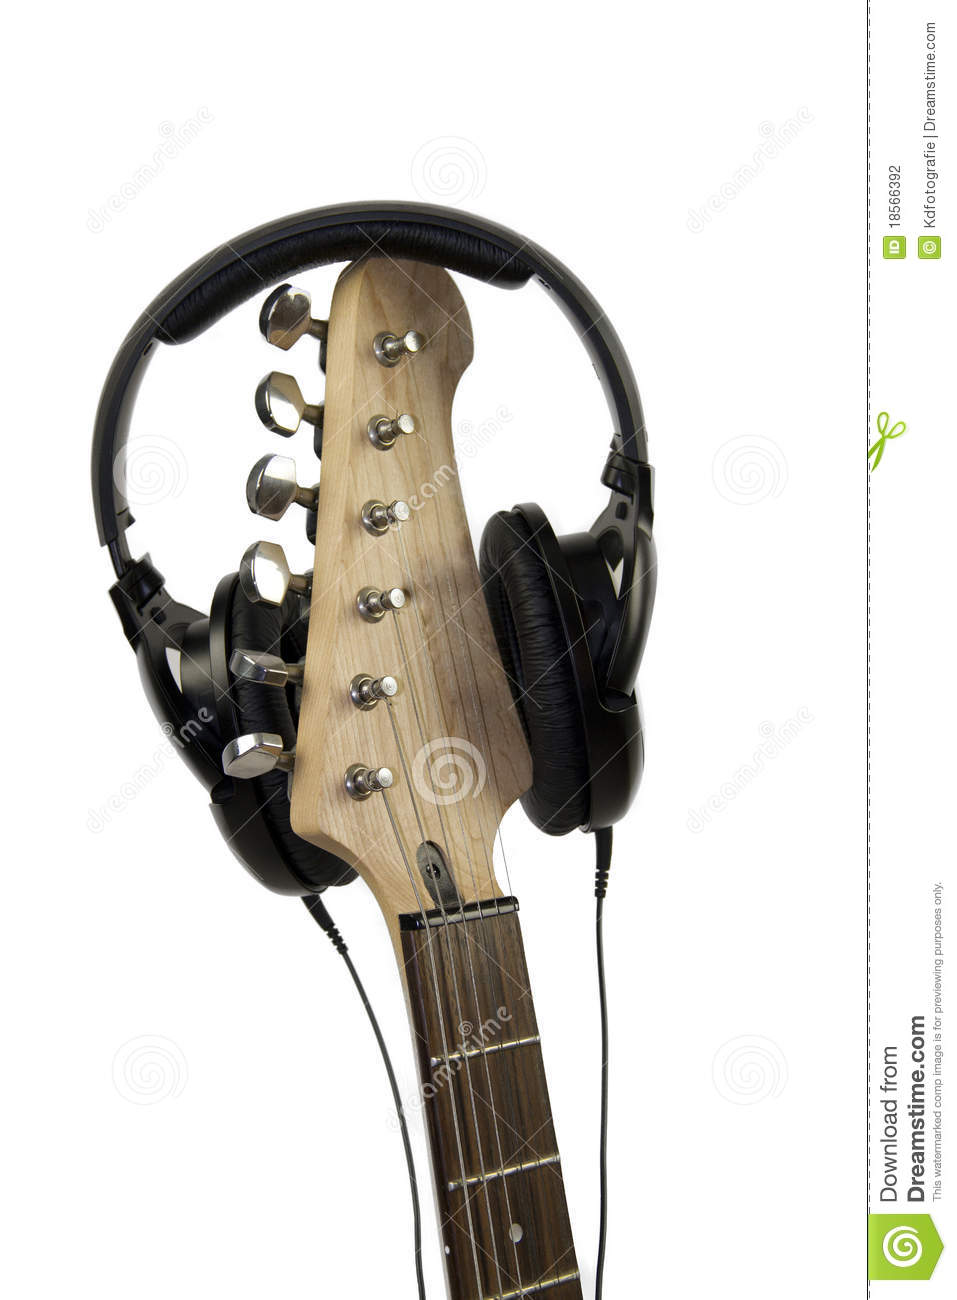 electric guitar with headphones stock photography image 18566392. Black Bedroom Furniture Sets. Home Design Ideas